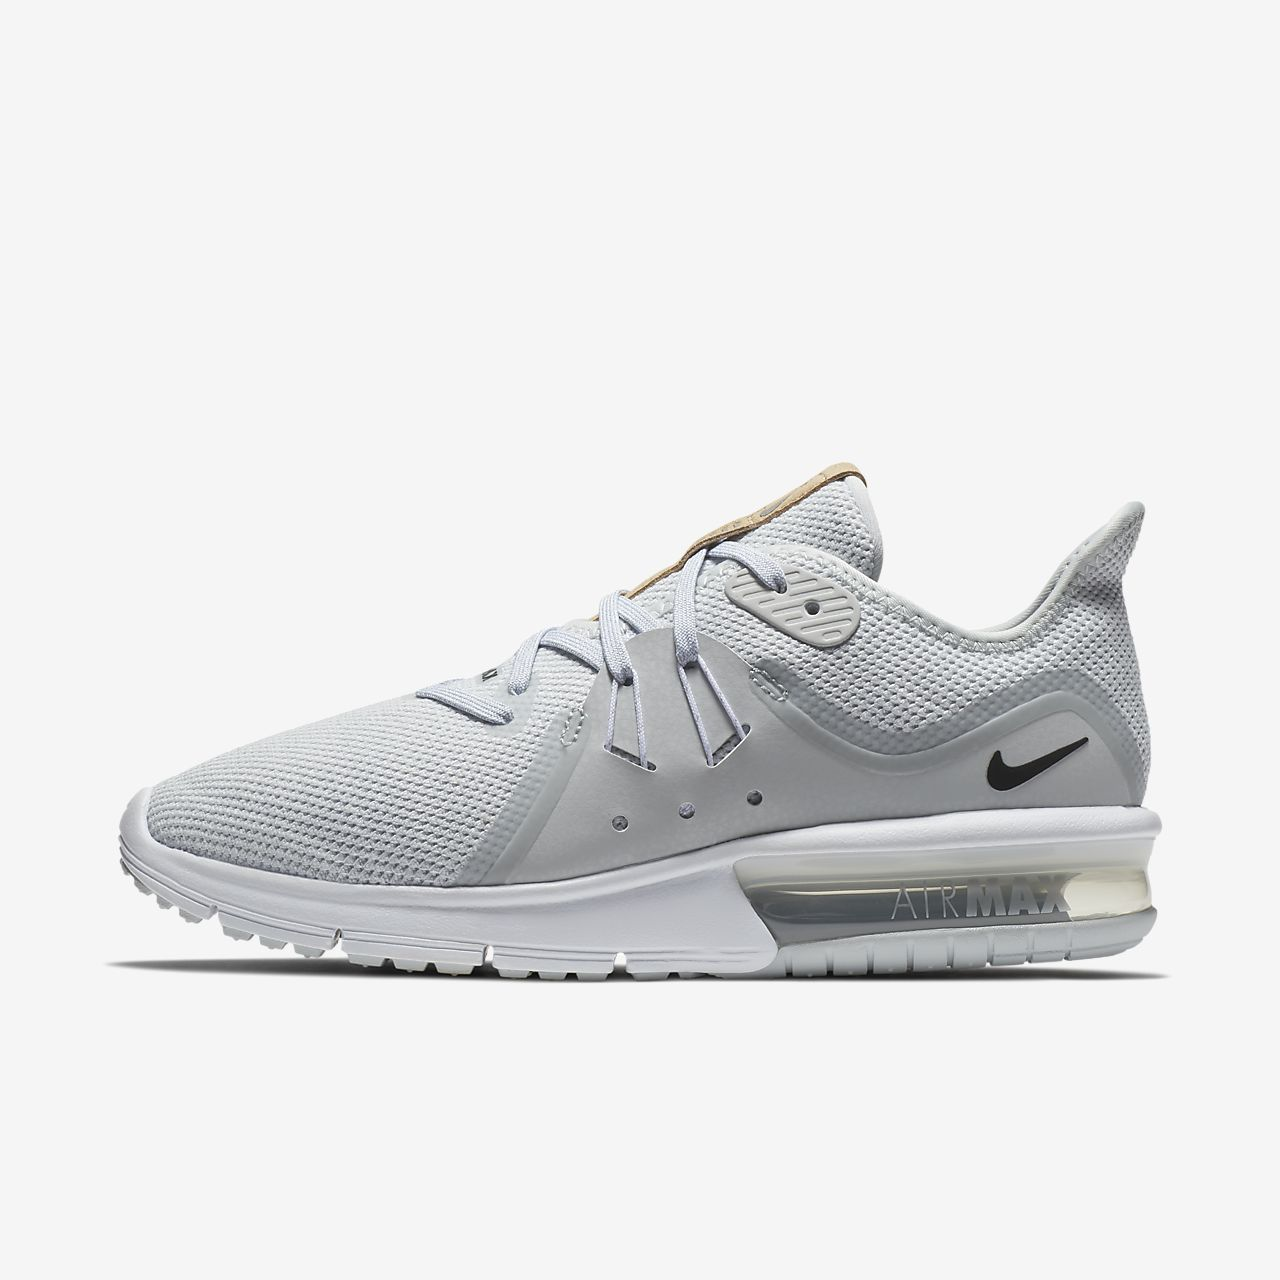 ddafafea24 Nike Air Max Sequent 3 Women's Shoe. Nike.com